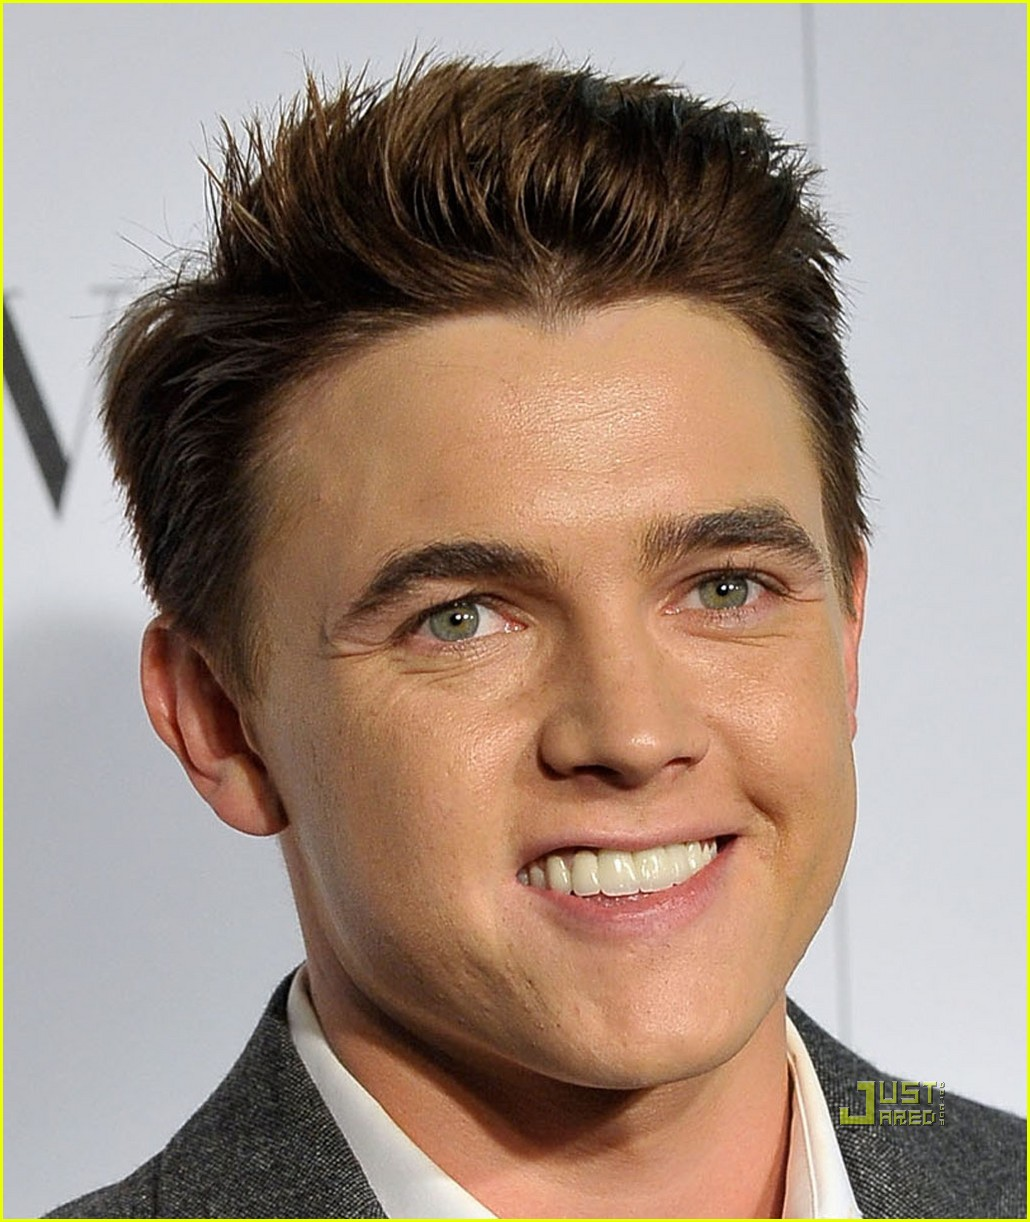 <b>jesse mccartney</b> makeup artist 03 - jesse-mccartney-makeup-artist-03